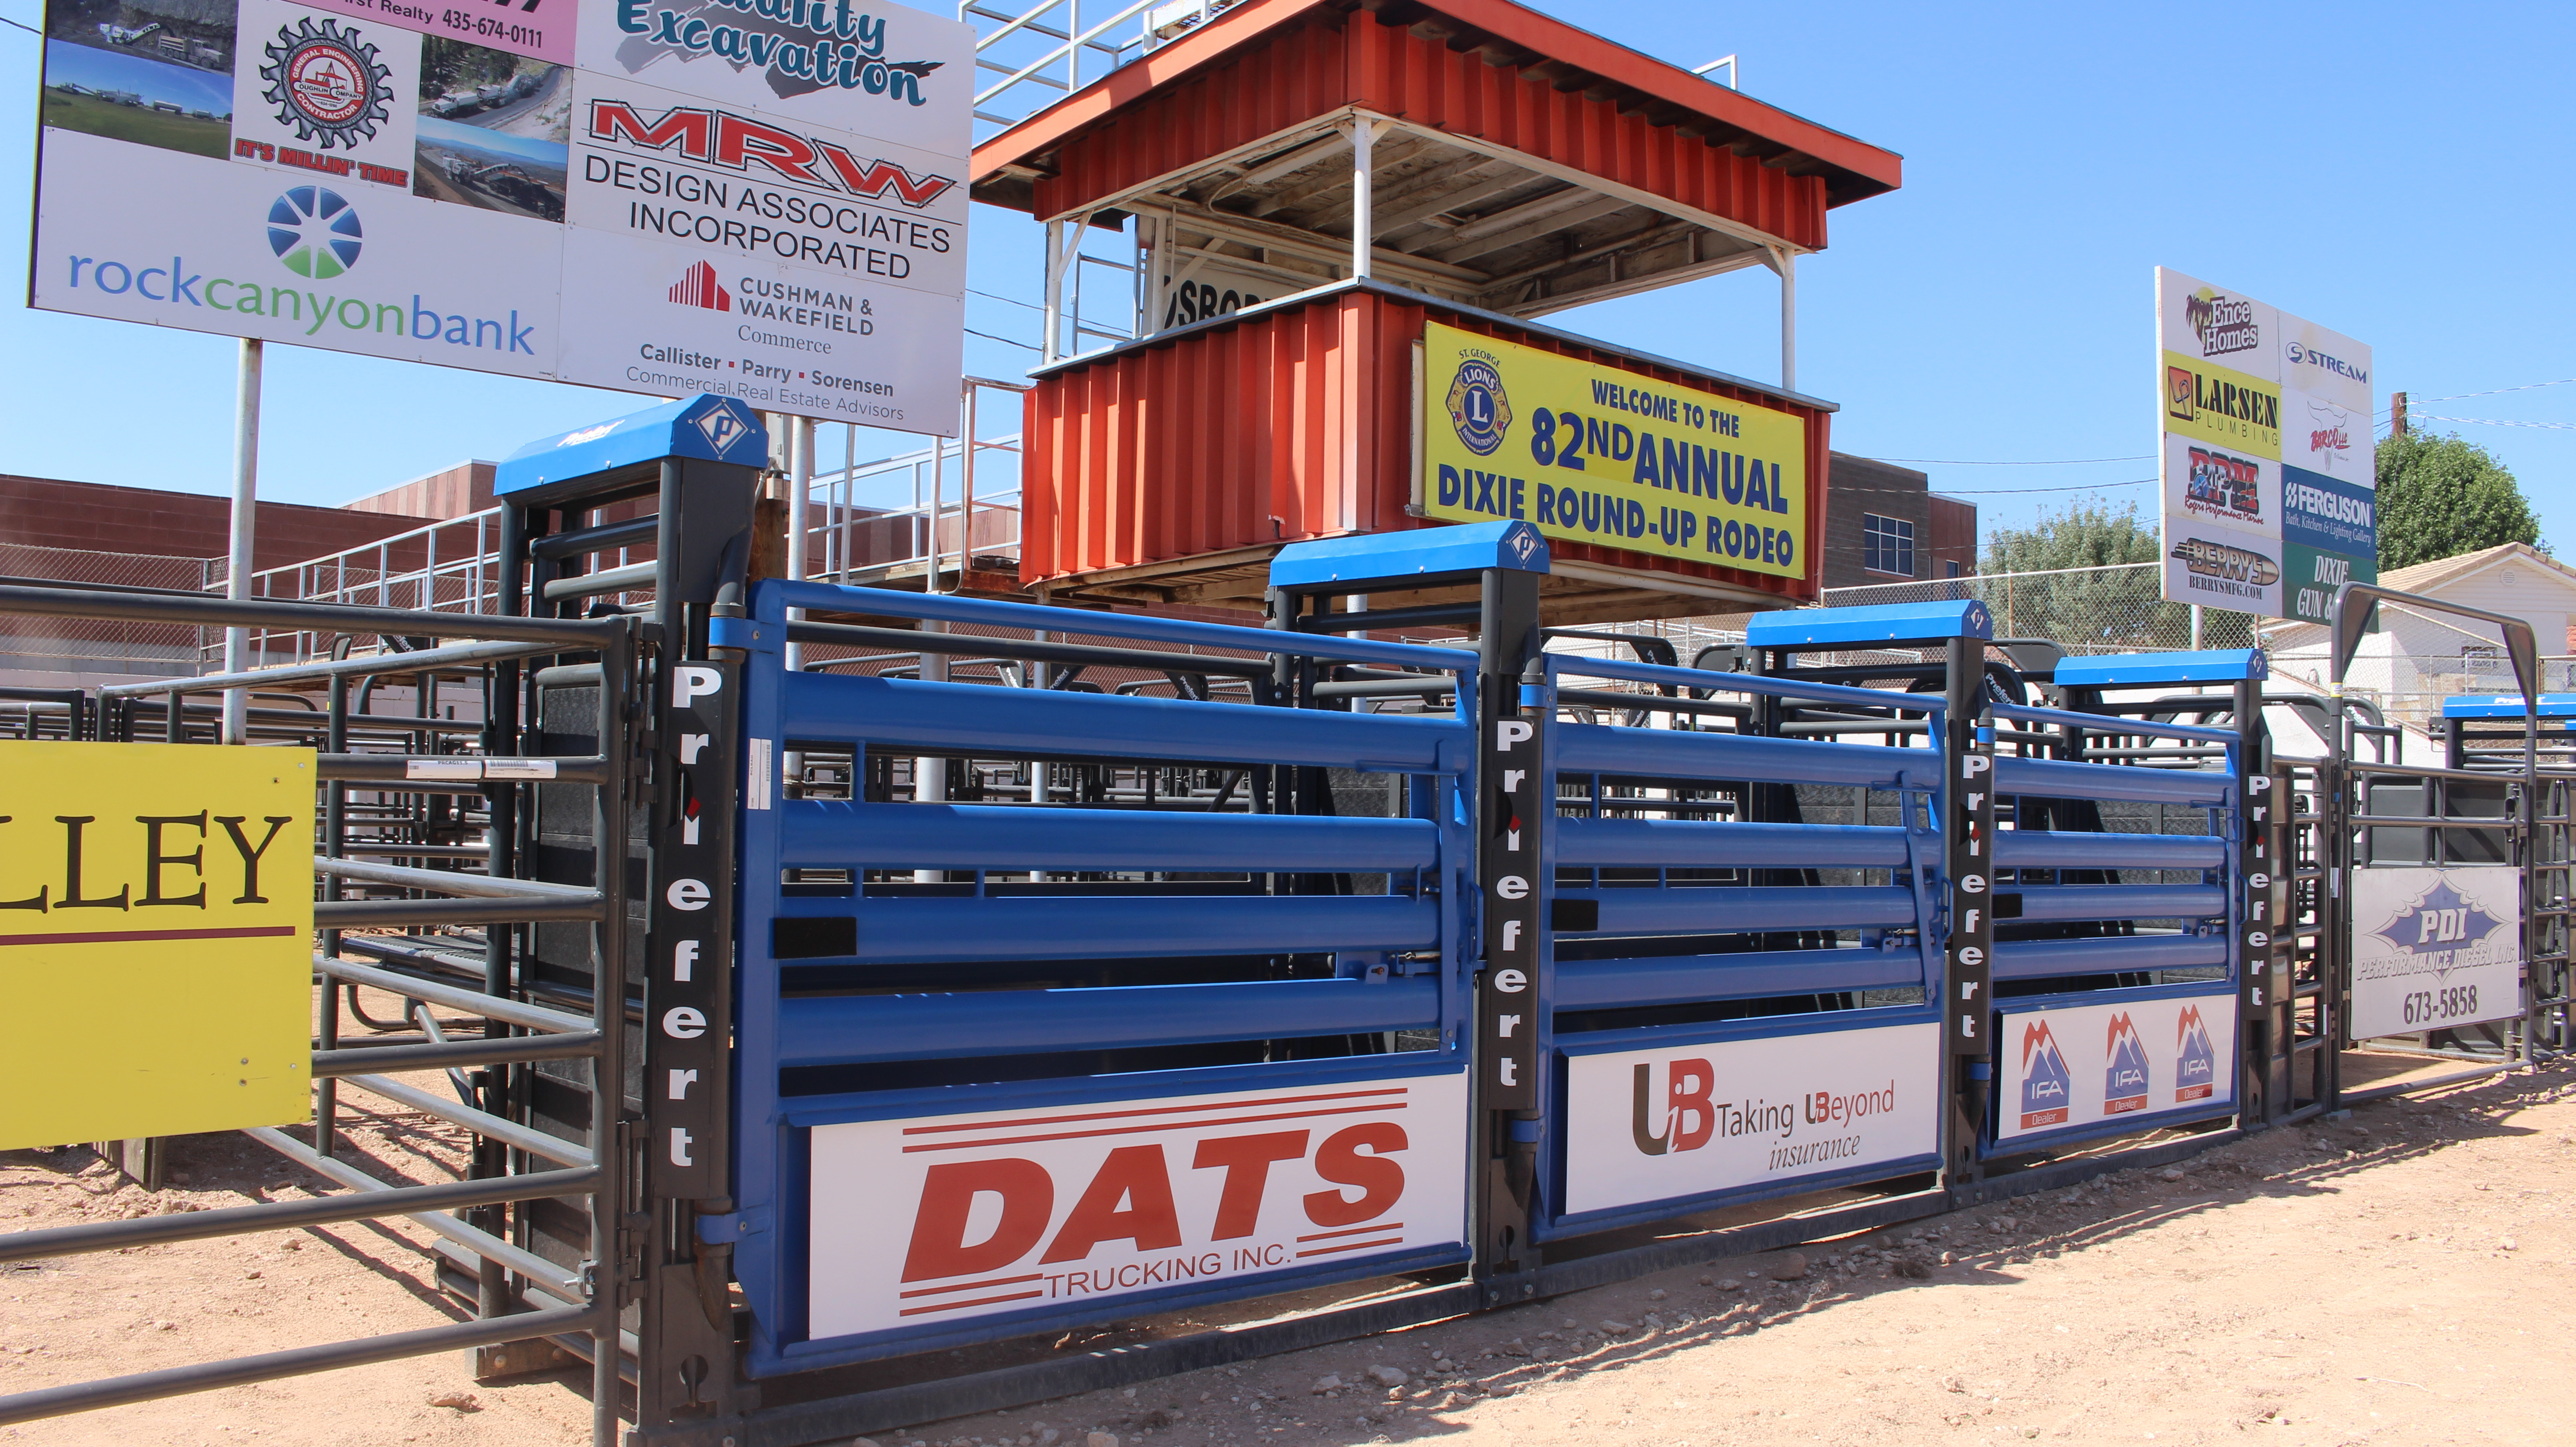 The historic Dixie Sunbowl received several upgrades ahead of the weekend's Dixie Roundup Rodeo including improvements to the chutes, St George, Utah, September 12, 2016   Photo by Joseph Witham, St George News.